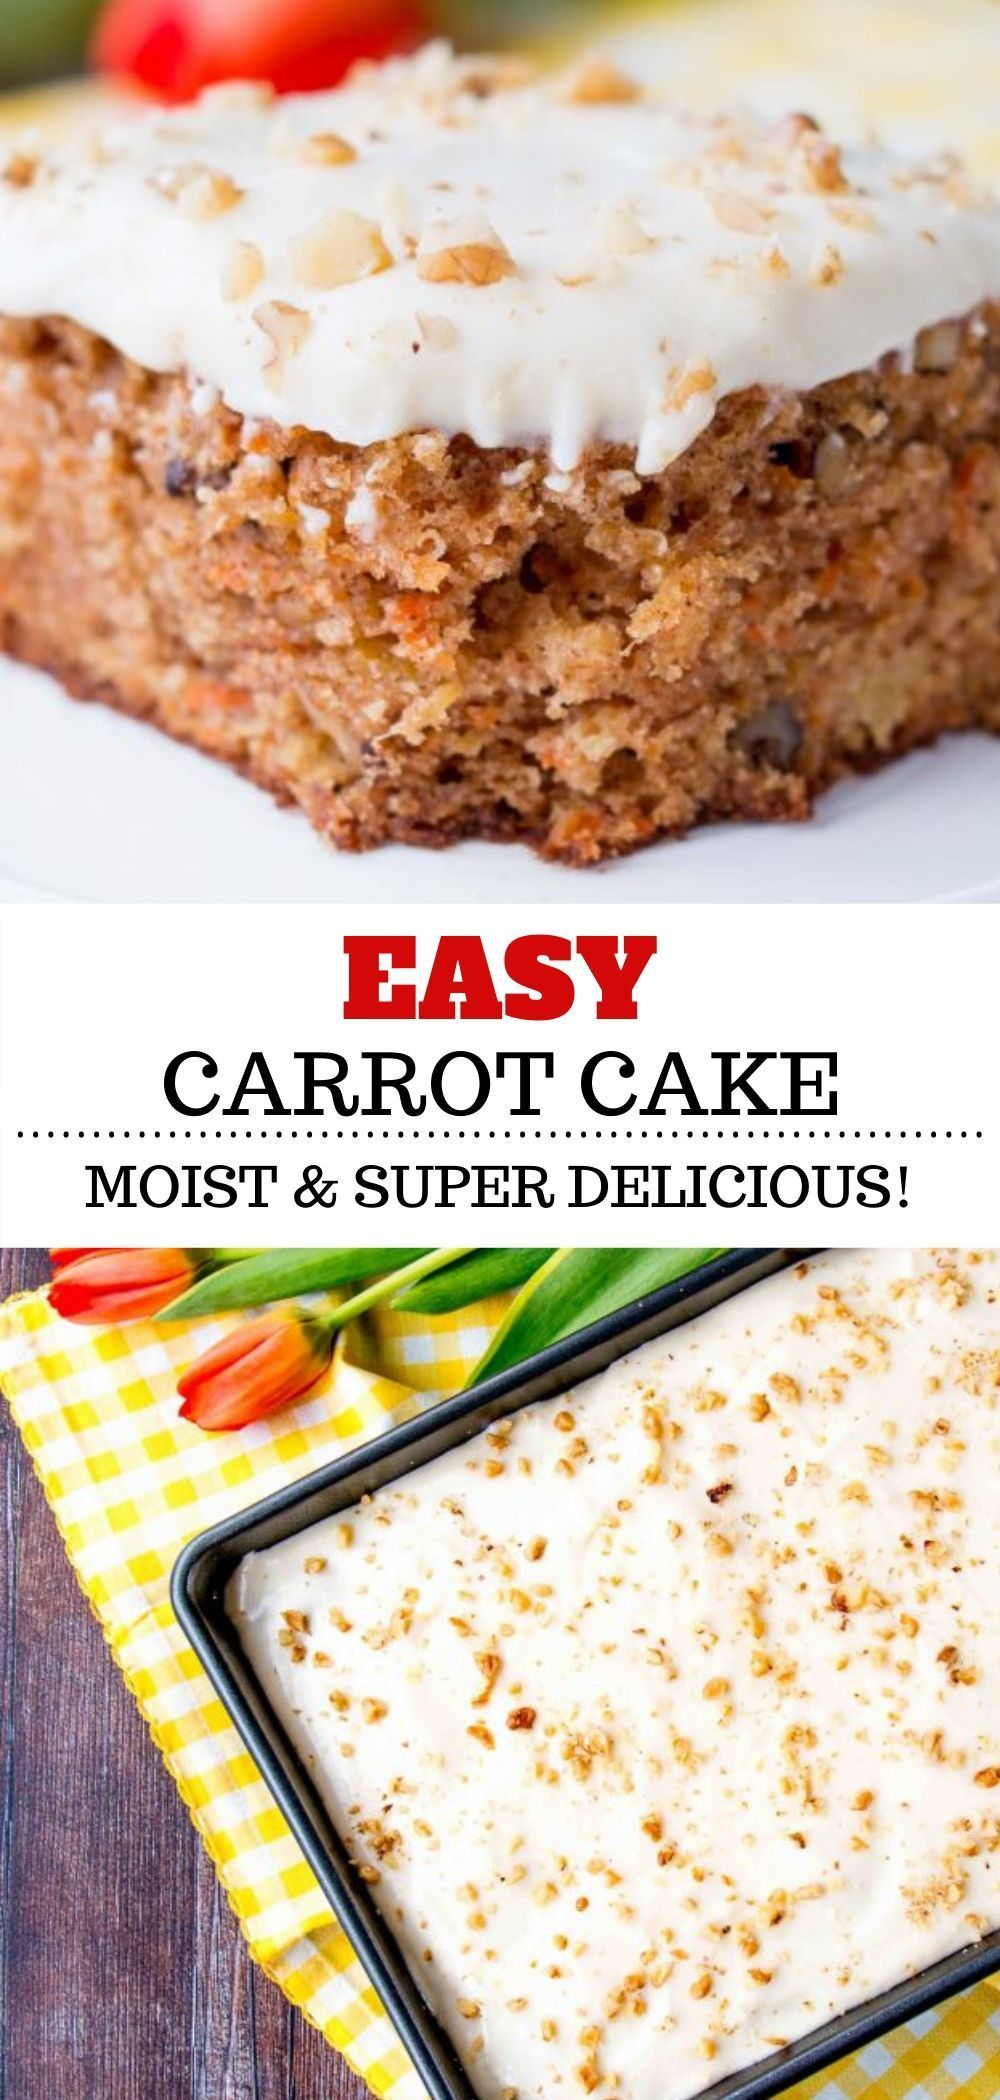 107 Recipe Perfect Carrot Cake With Cream Cheese Frosting: Easy Carrot Cake With Cream Cheese Frosting